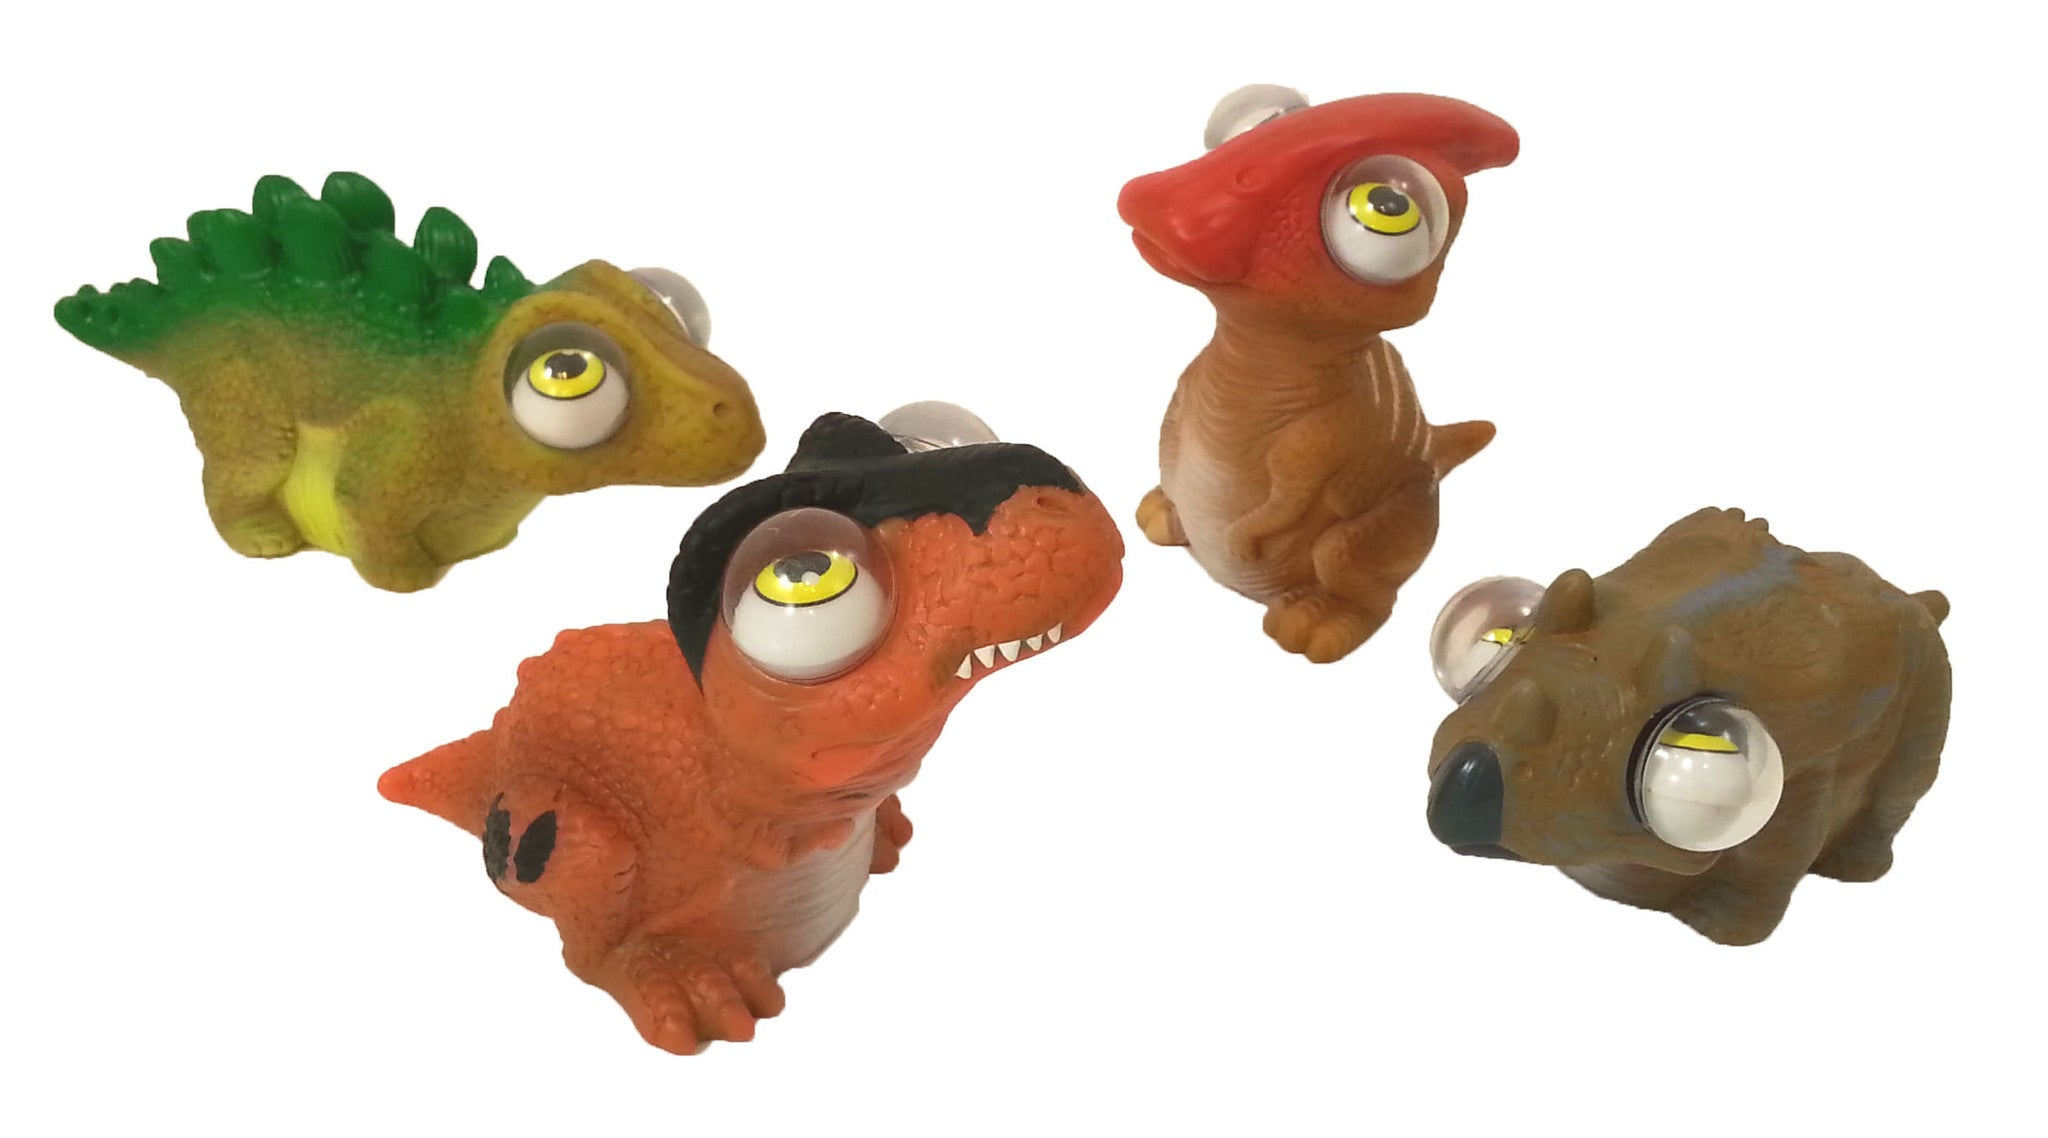 Dino PopEyes Figures - Dinosaur Toys Set of 4 by GeoCentral - Off The Wall Toys and Gifts